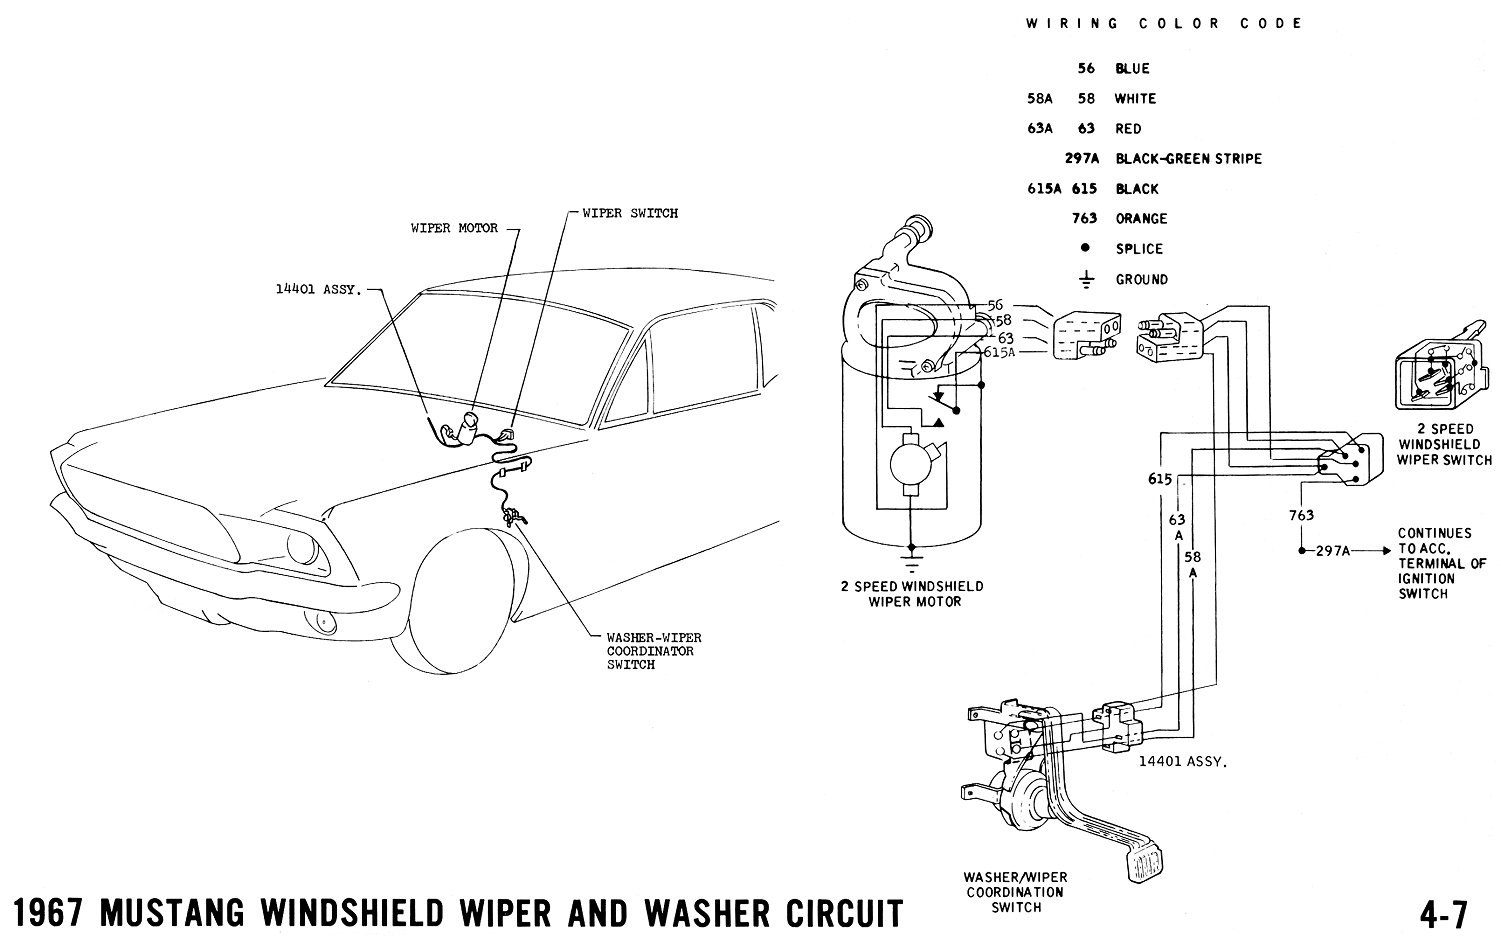 1967 Mustang Wiring And Vacuum Diagrams Average Joe Restoration Ford 4 2 V6 Engine Diagram Pictorial Schematic